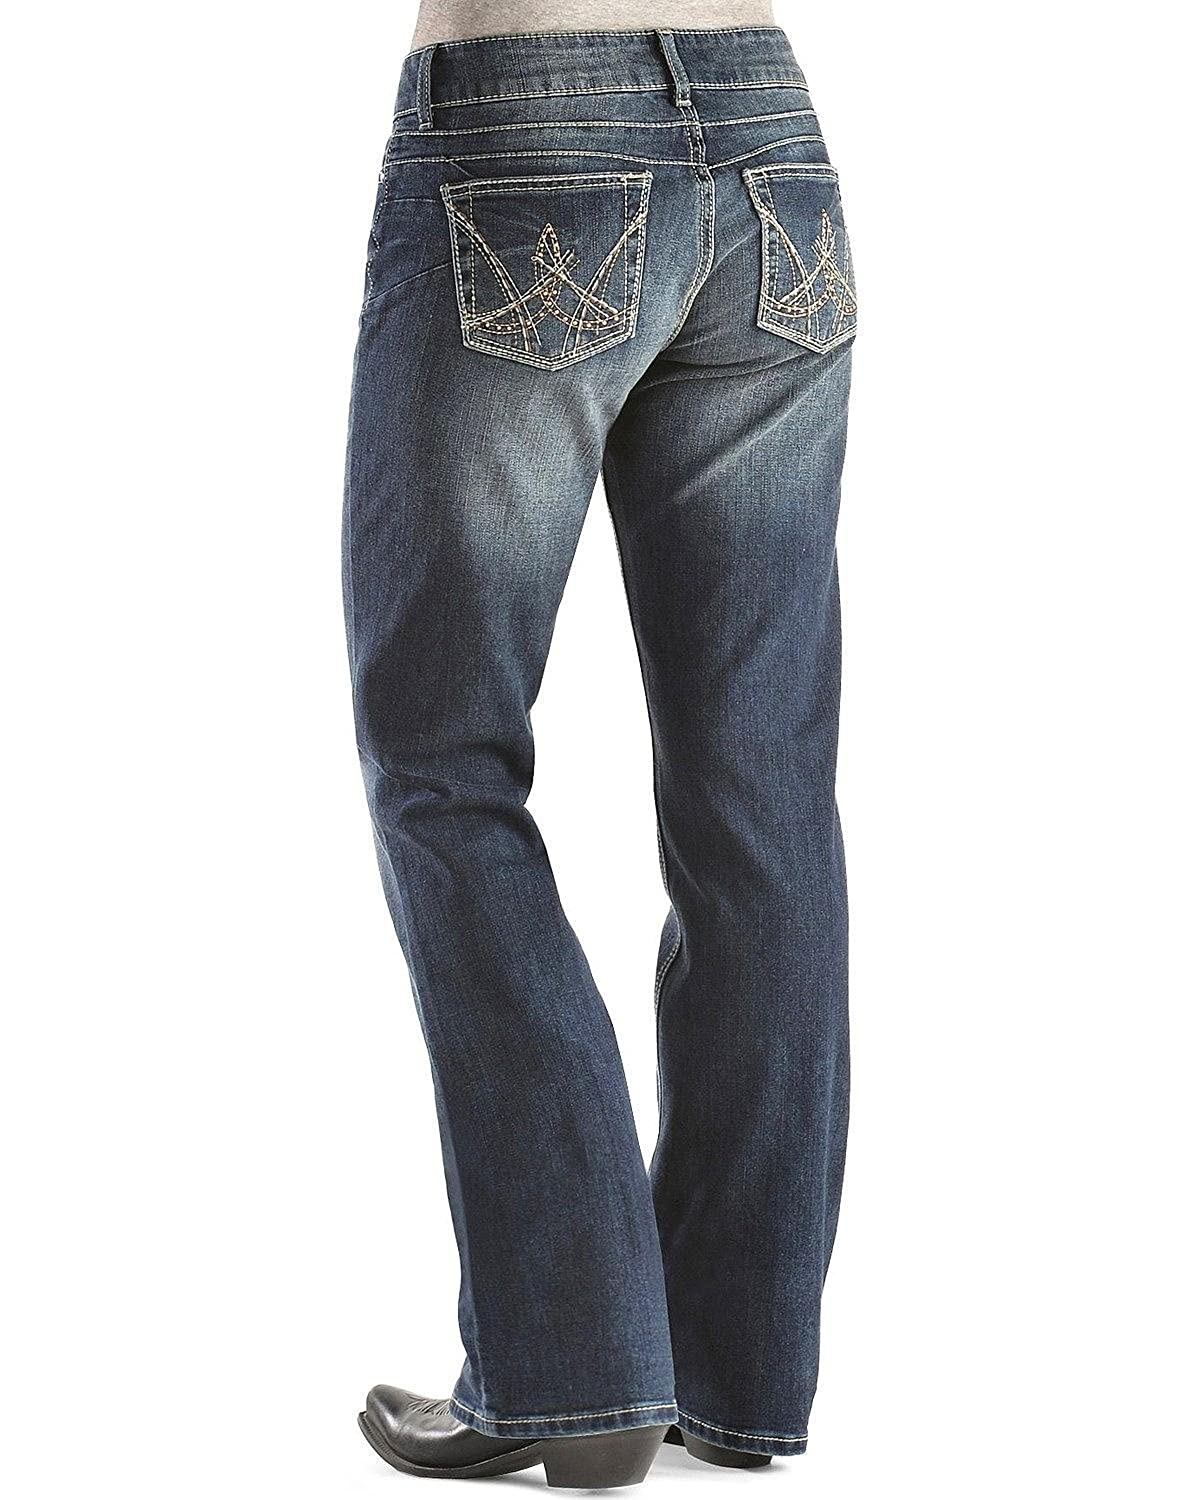 Wrangler@ Premium Patch@ with Booty Up@ Technology Jeans 5/6x32